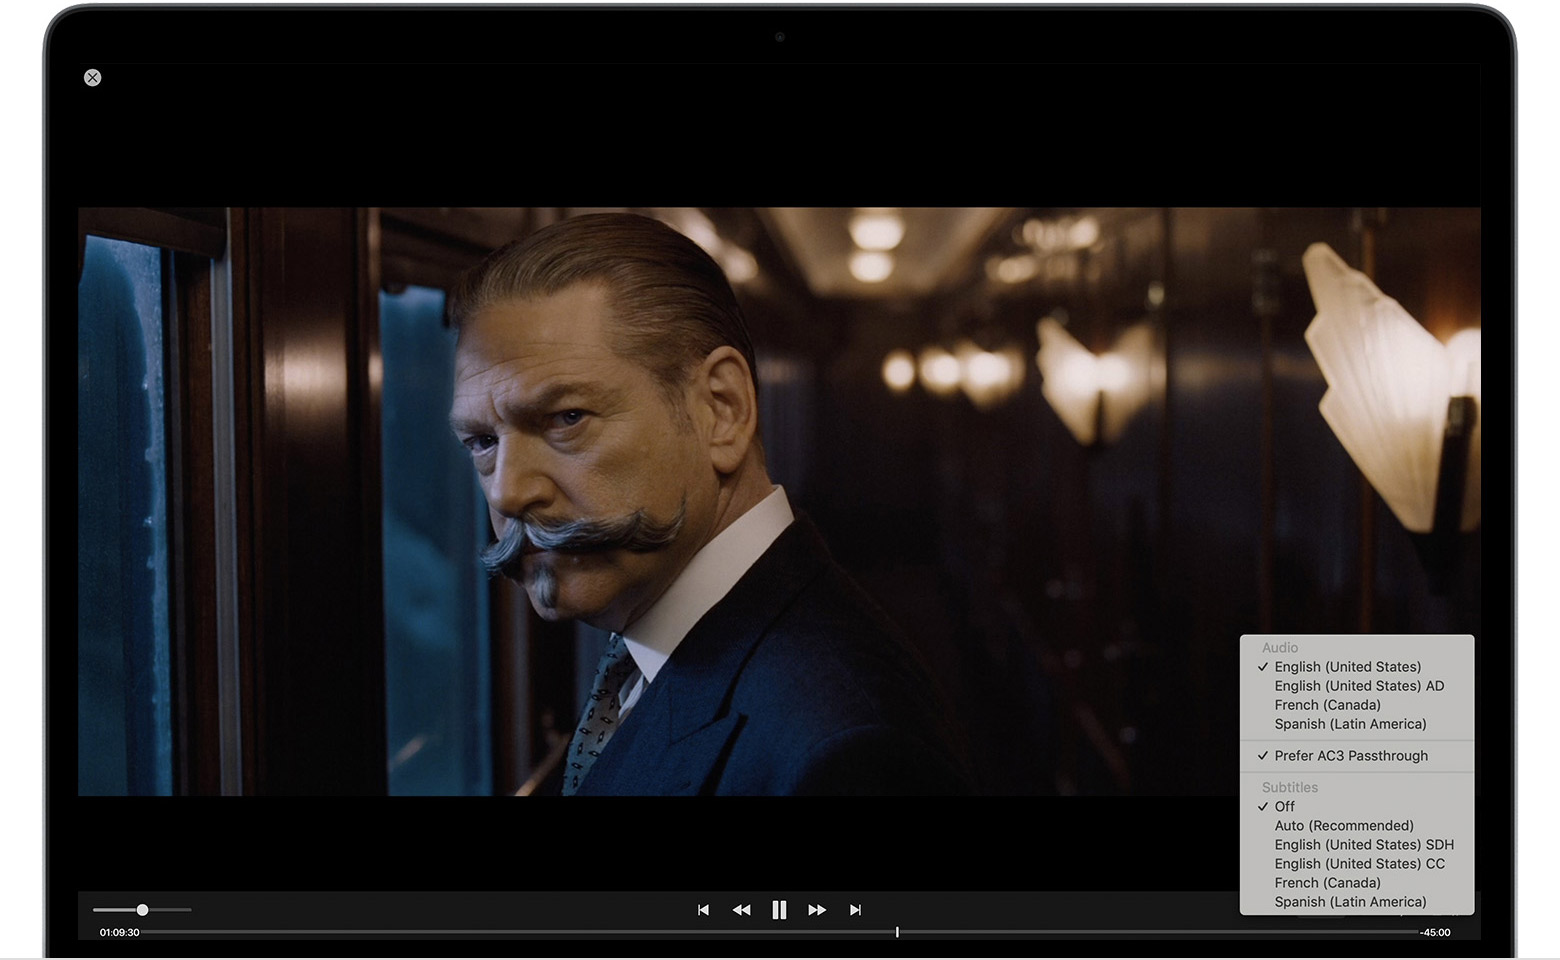 A cropped image of a Mac showing the movie Murder on the Orient Express paused. The Audio and Subtitles menu is open in the lower-right corner.